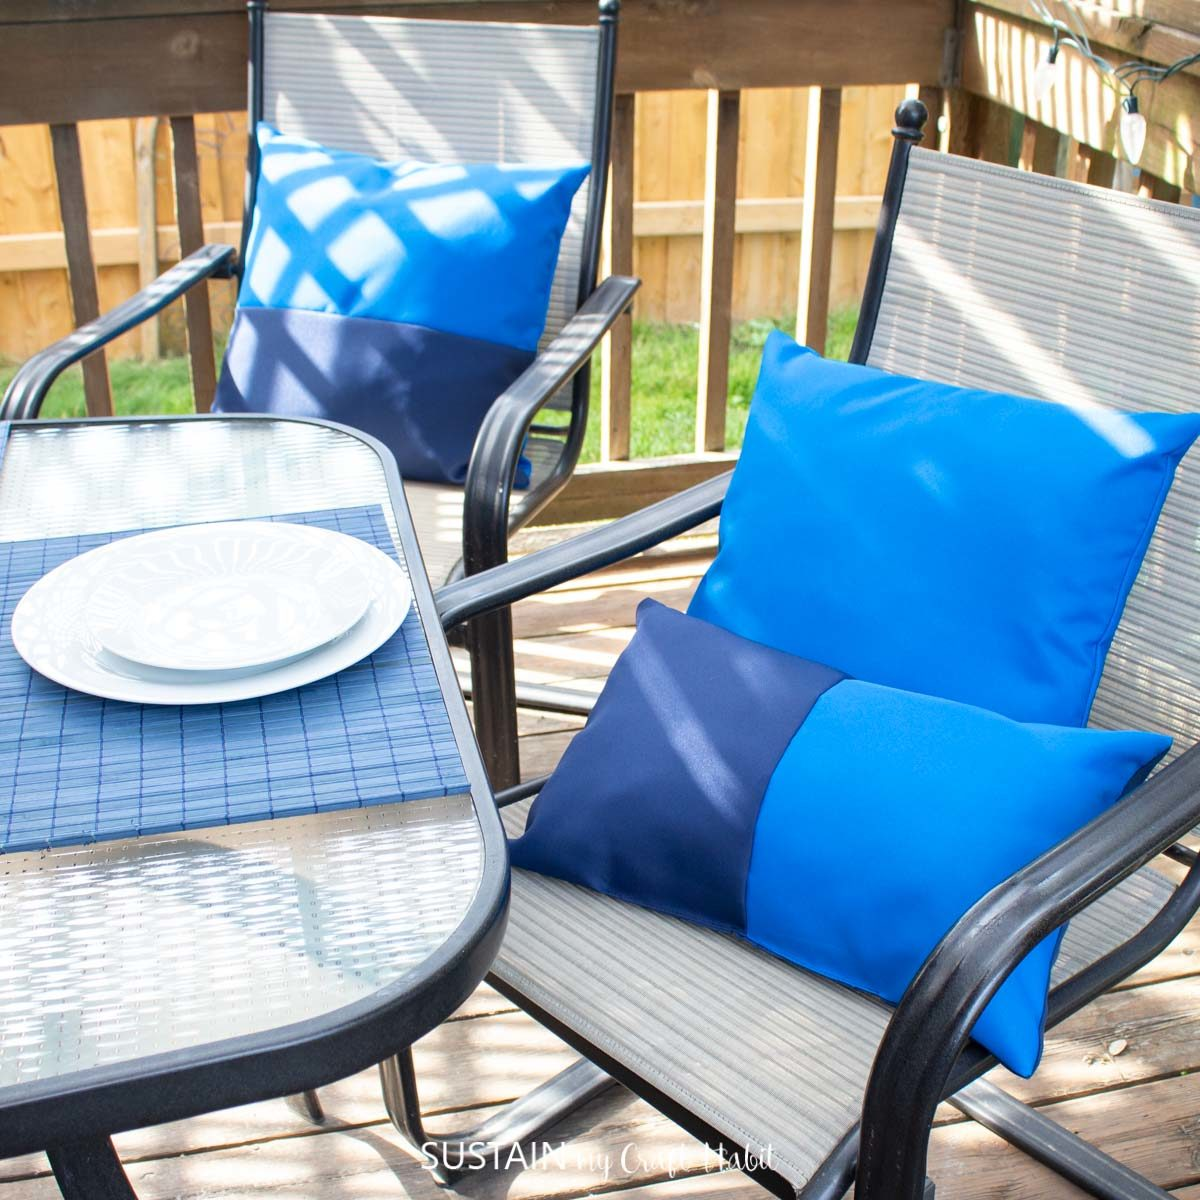 Blue outdoor pillows on chairs.